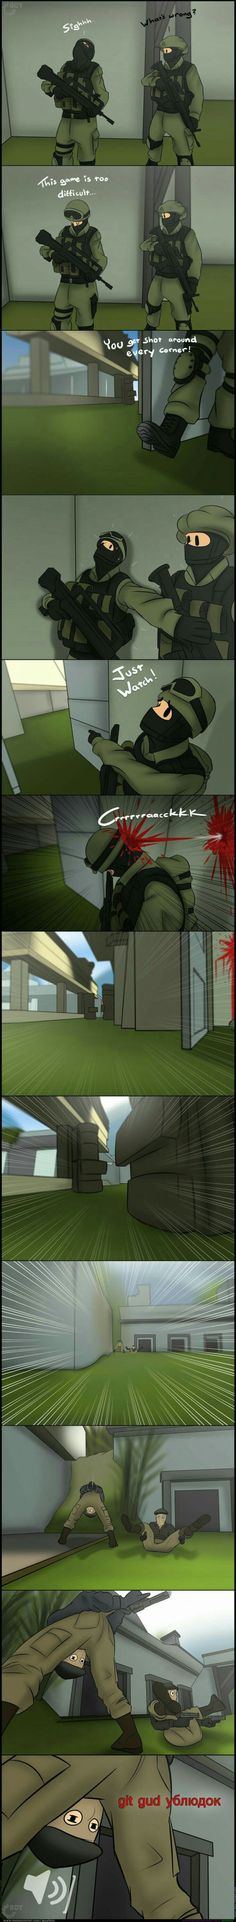 CS:GO in a nutshell (Comic by GearBoy)